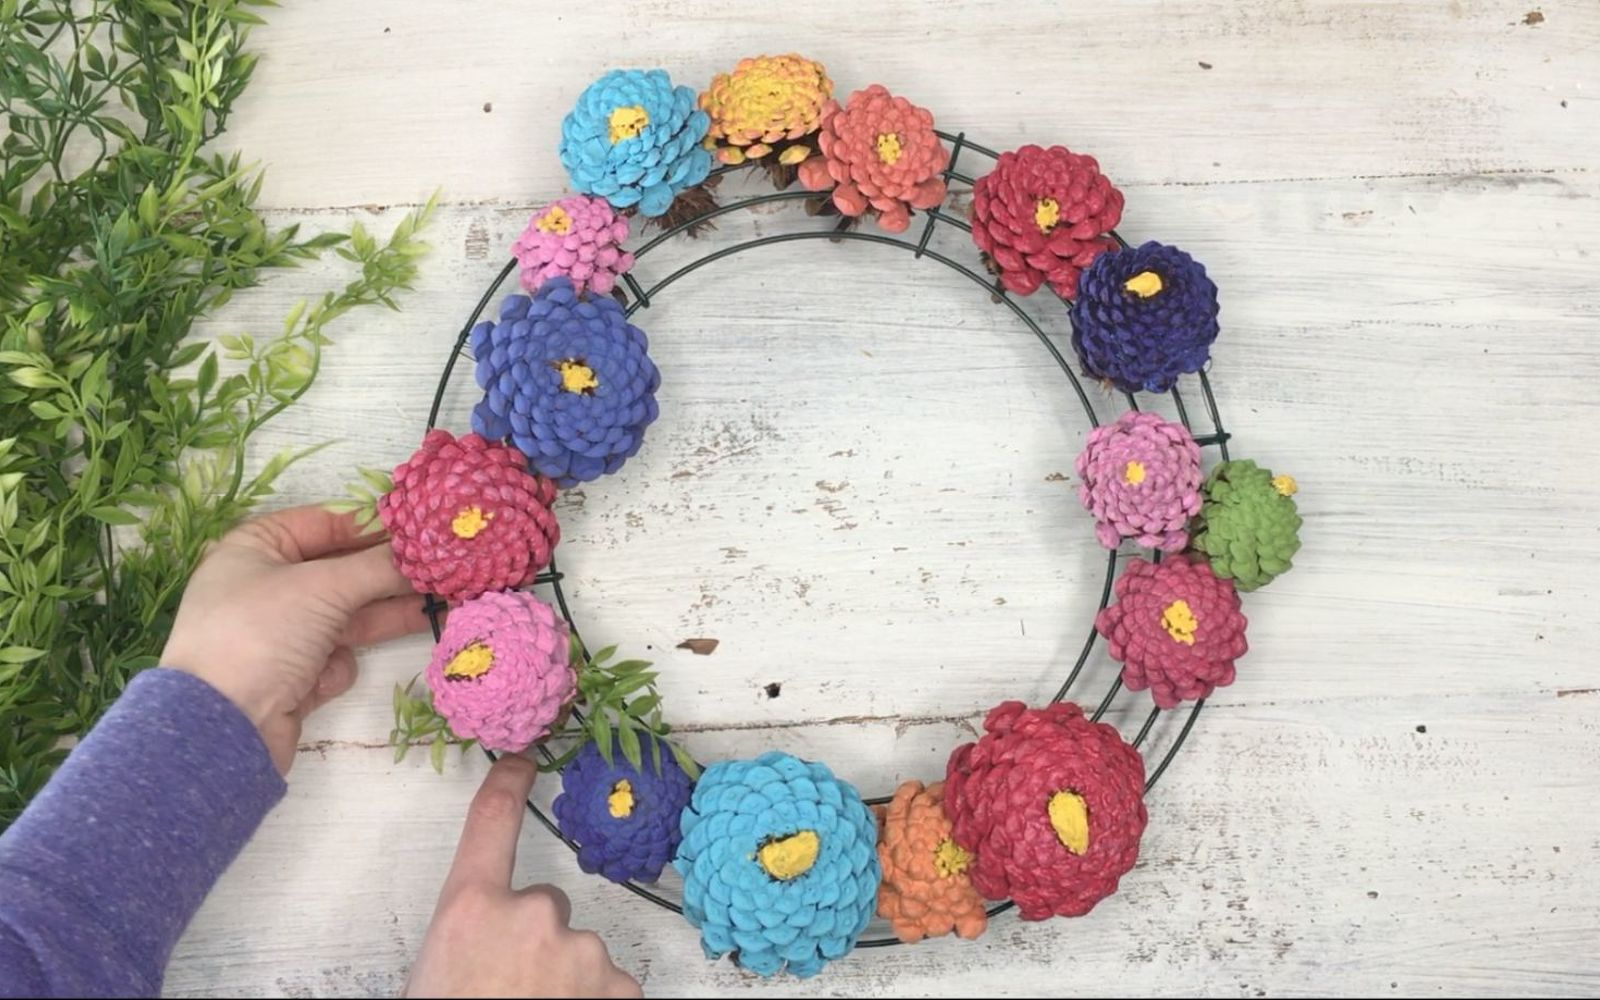 s 3 wreath ideas to brighten up your front door, Step 6 Grab any greenery to fill empty spots